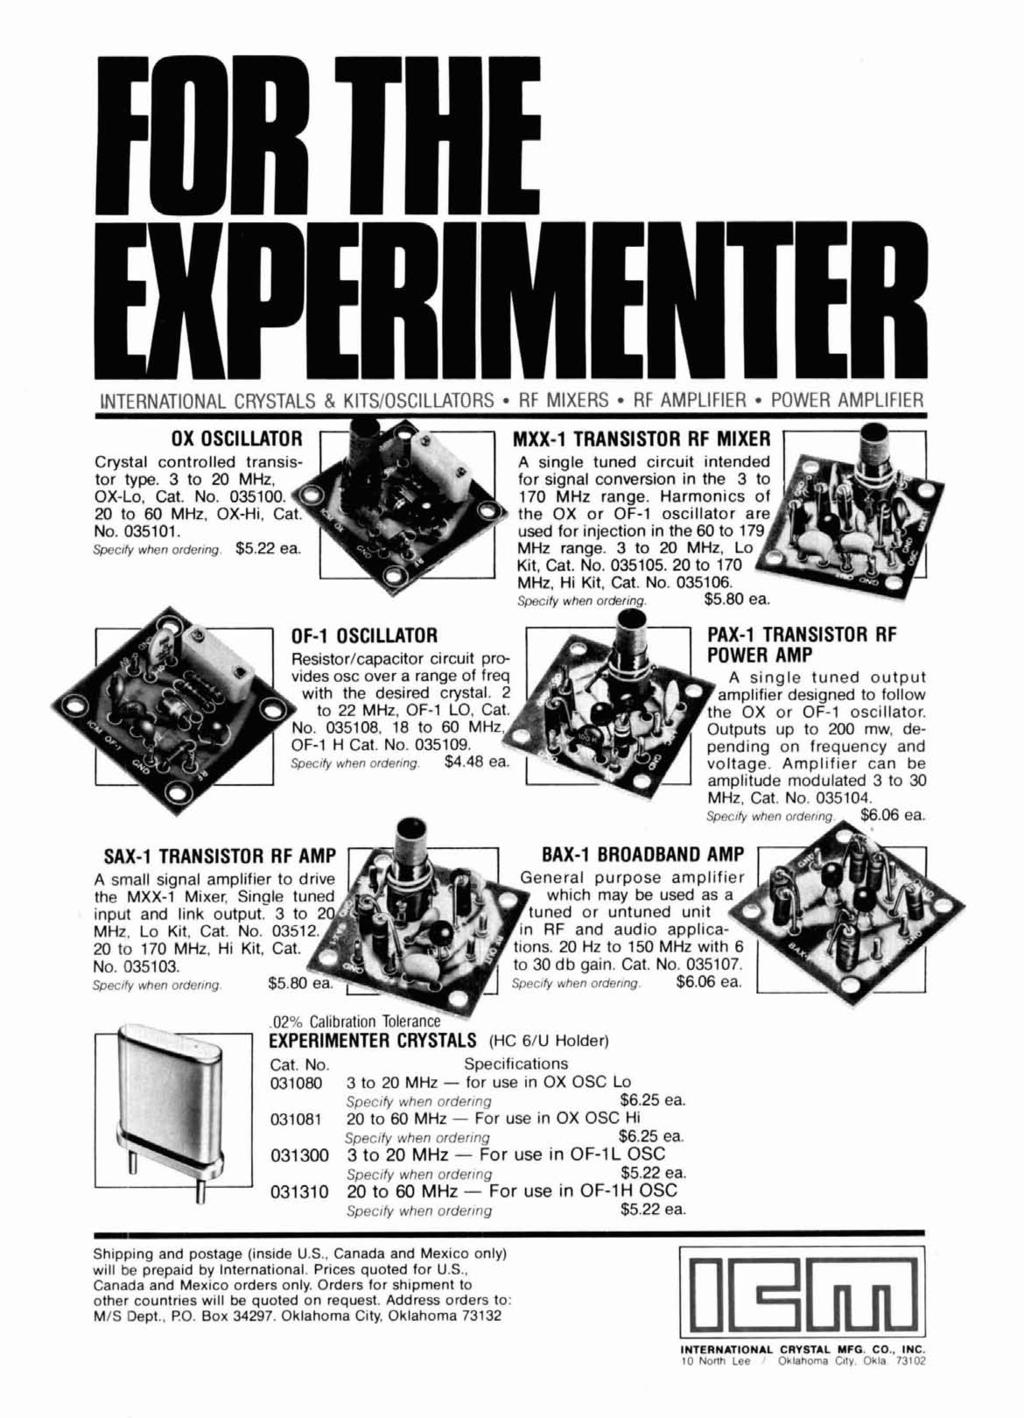 FOR THE EXPERIMENTER -- ----- - INTERNATIONAL CRYSTALS & KITSIOSCILLATORS RF MIXERS RF AMPLIFIER POWER AMPLIFIER Crystal controlled transistor type. 3 to 20 MHz. OX-Lo. Cat. No. 035100.